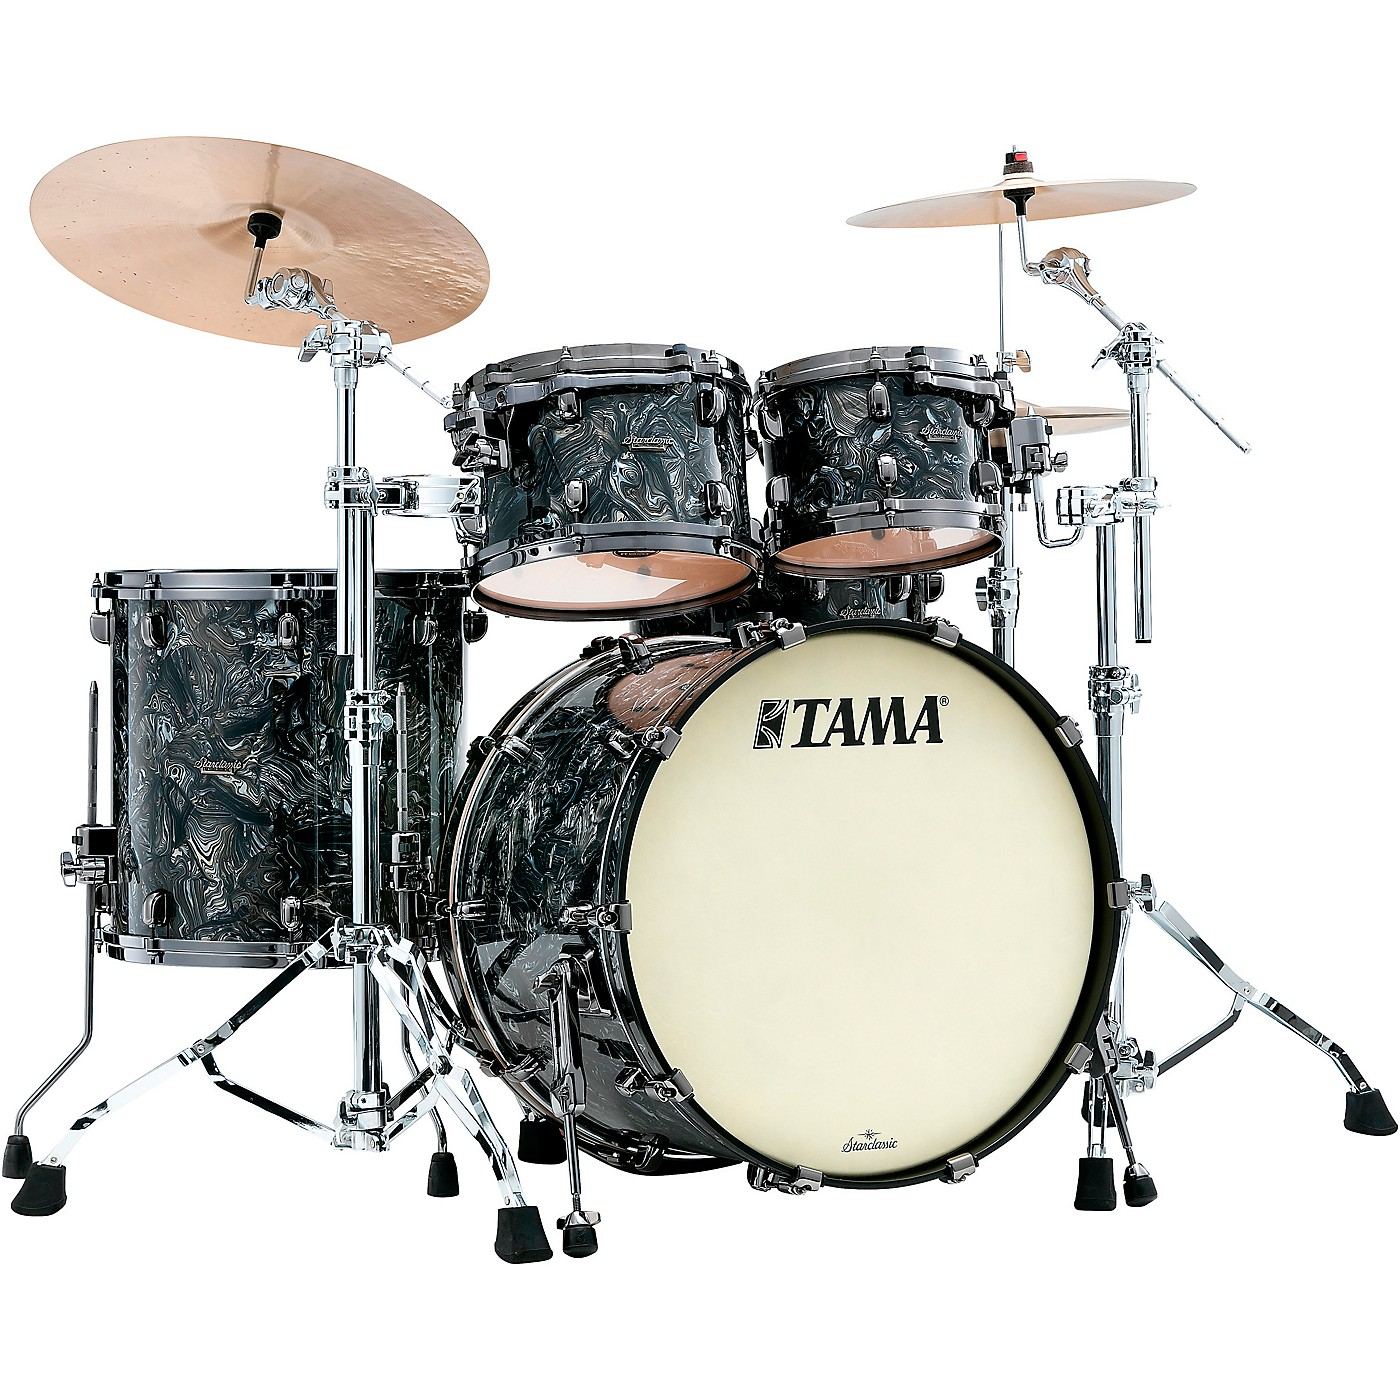 TAMA Starclassic Maple 4-Piece Shell Pack with Black Nickel Hardware and 22 in. Bass Drum thumbnail